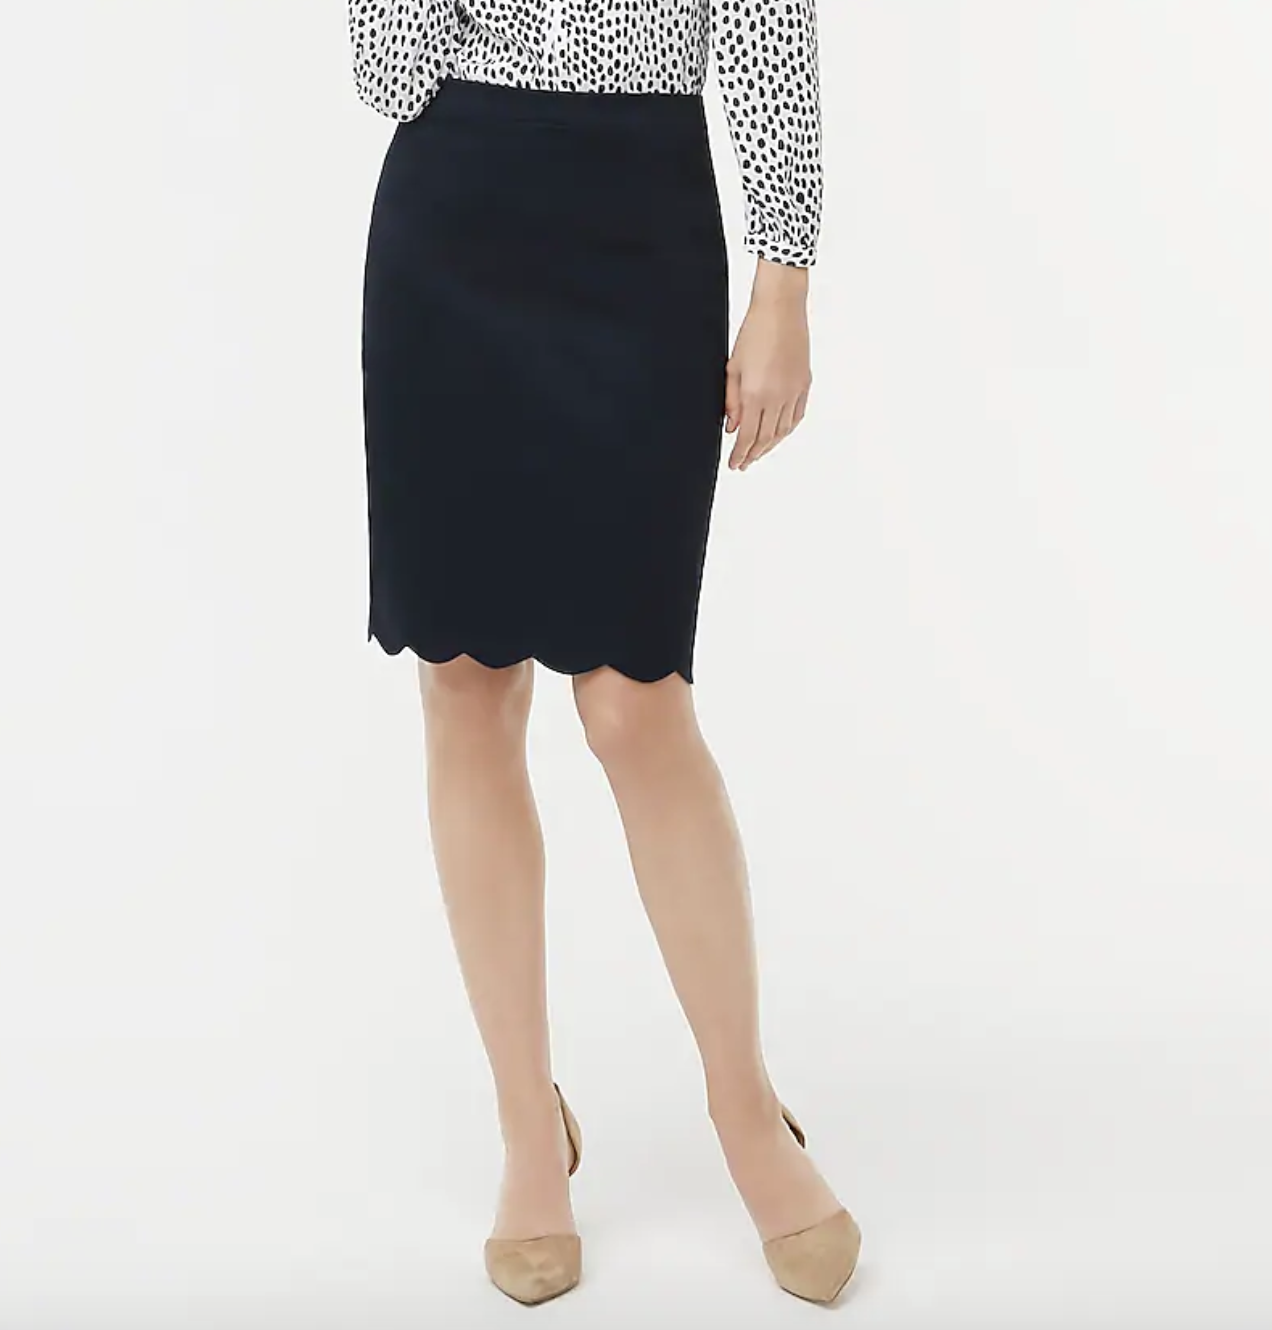 A model wearing the skirt with a black and white blouse tucked into it and nude flats